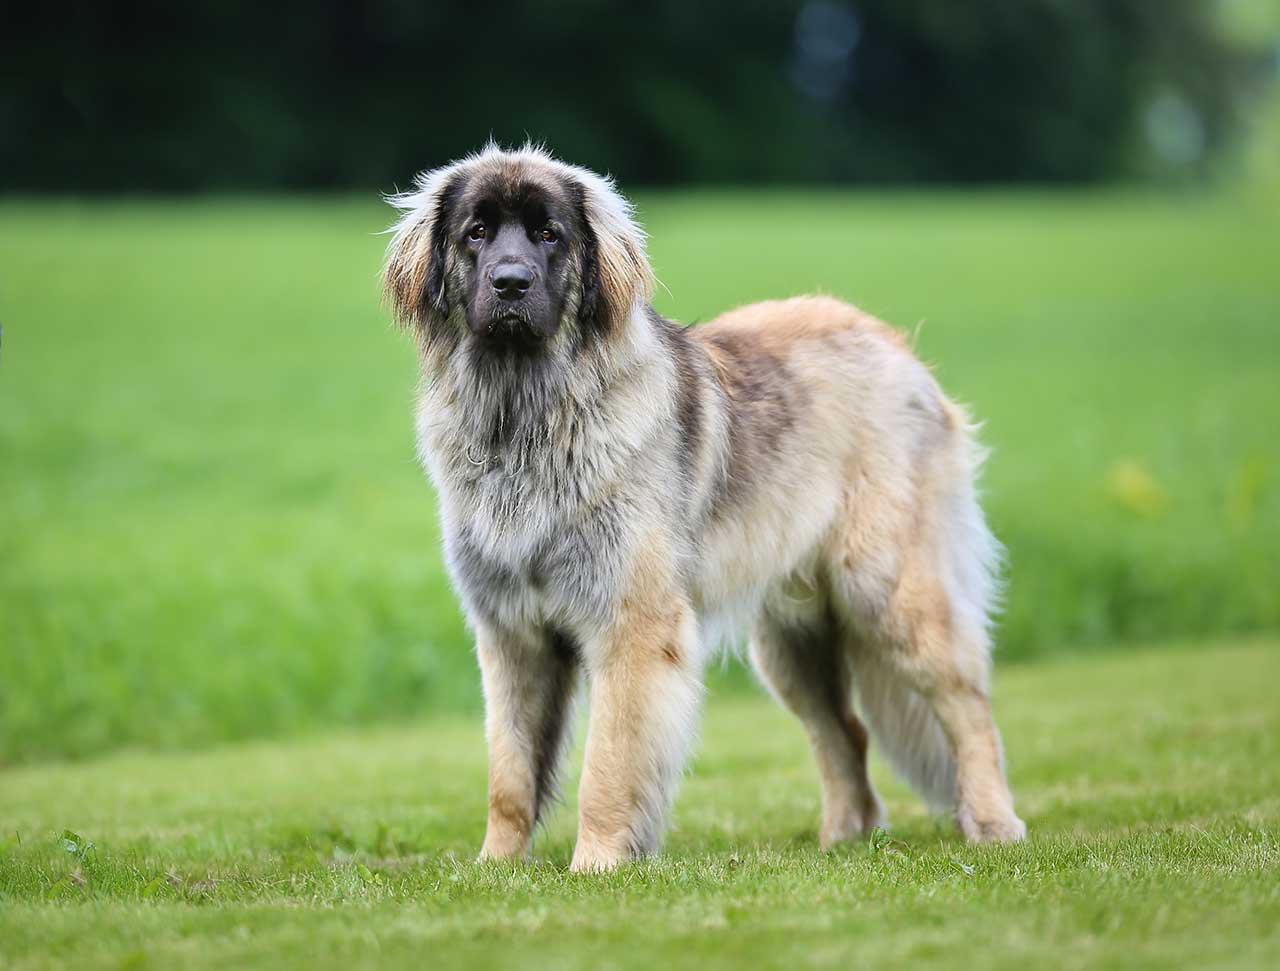 Leonberger Puppies For Sale In Missouri | Top Dog Information |Leonberger Dogs And Puppies